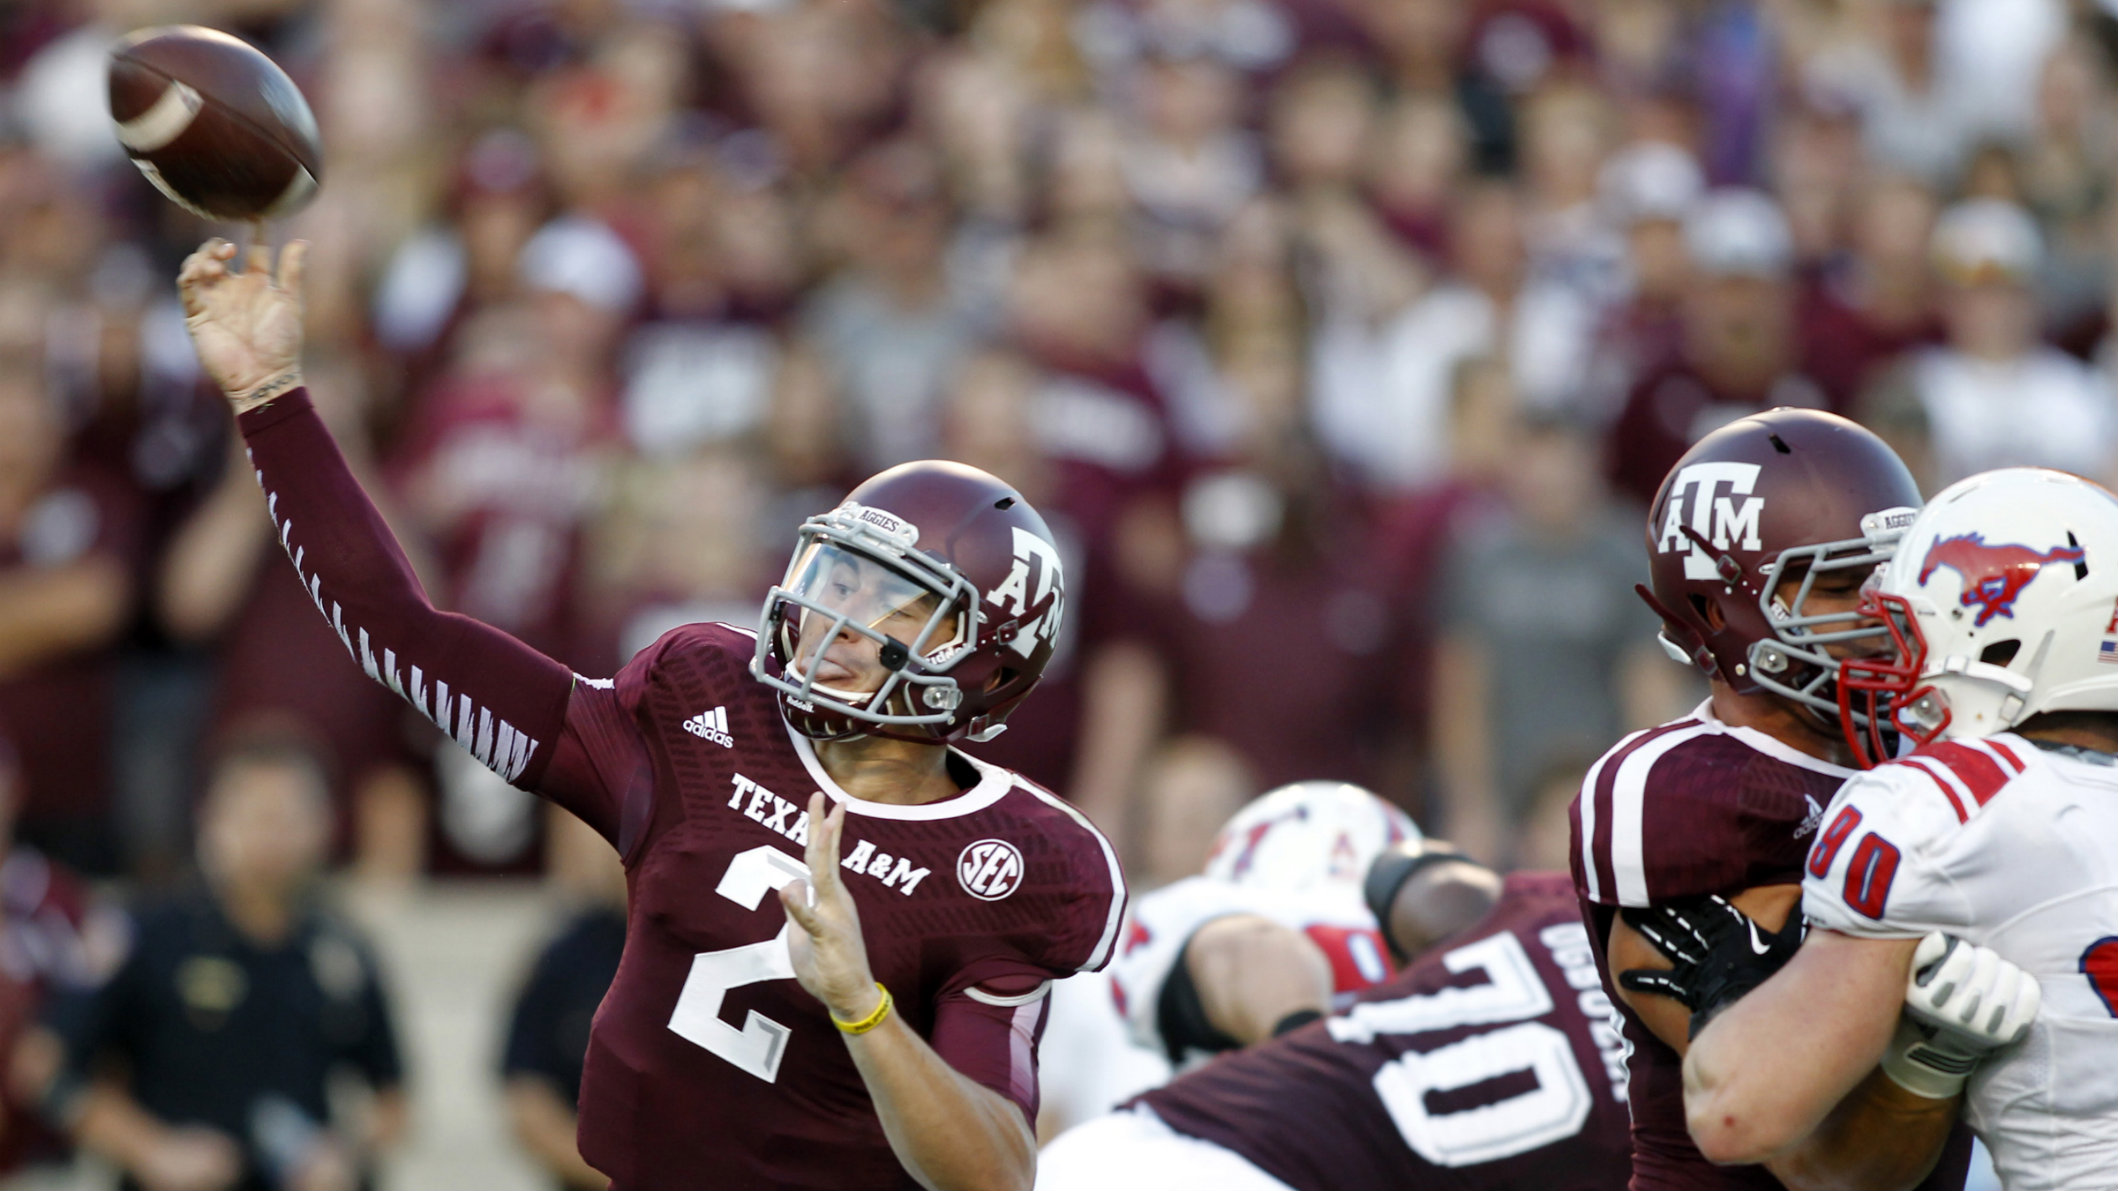 Could Johnny Football soon be remunerated for his  onfield exploits?